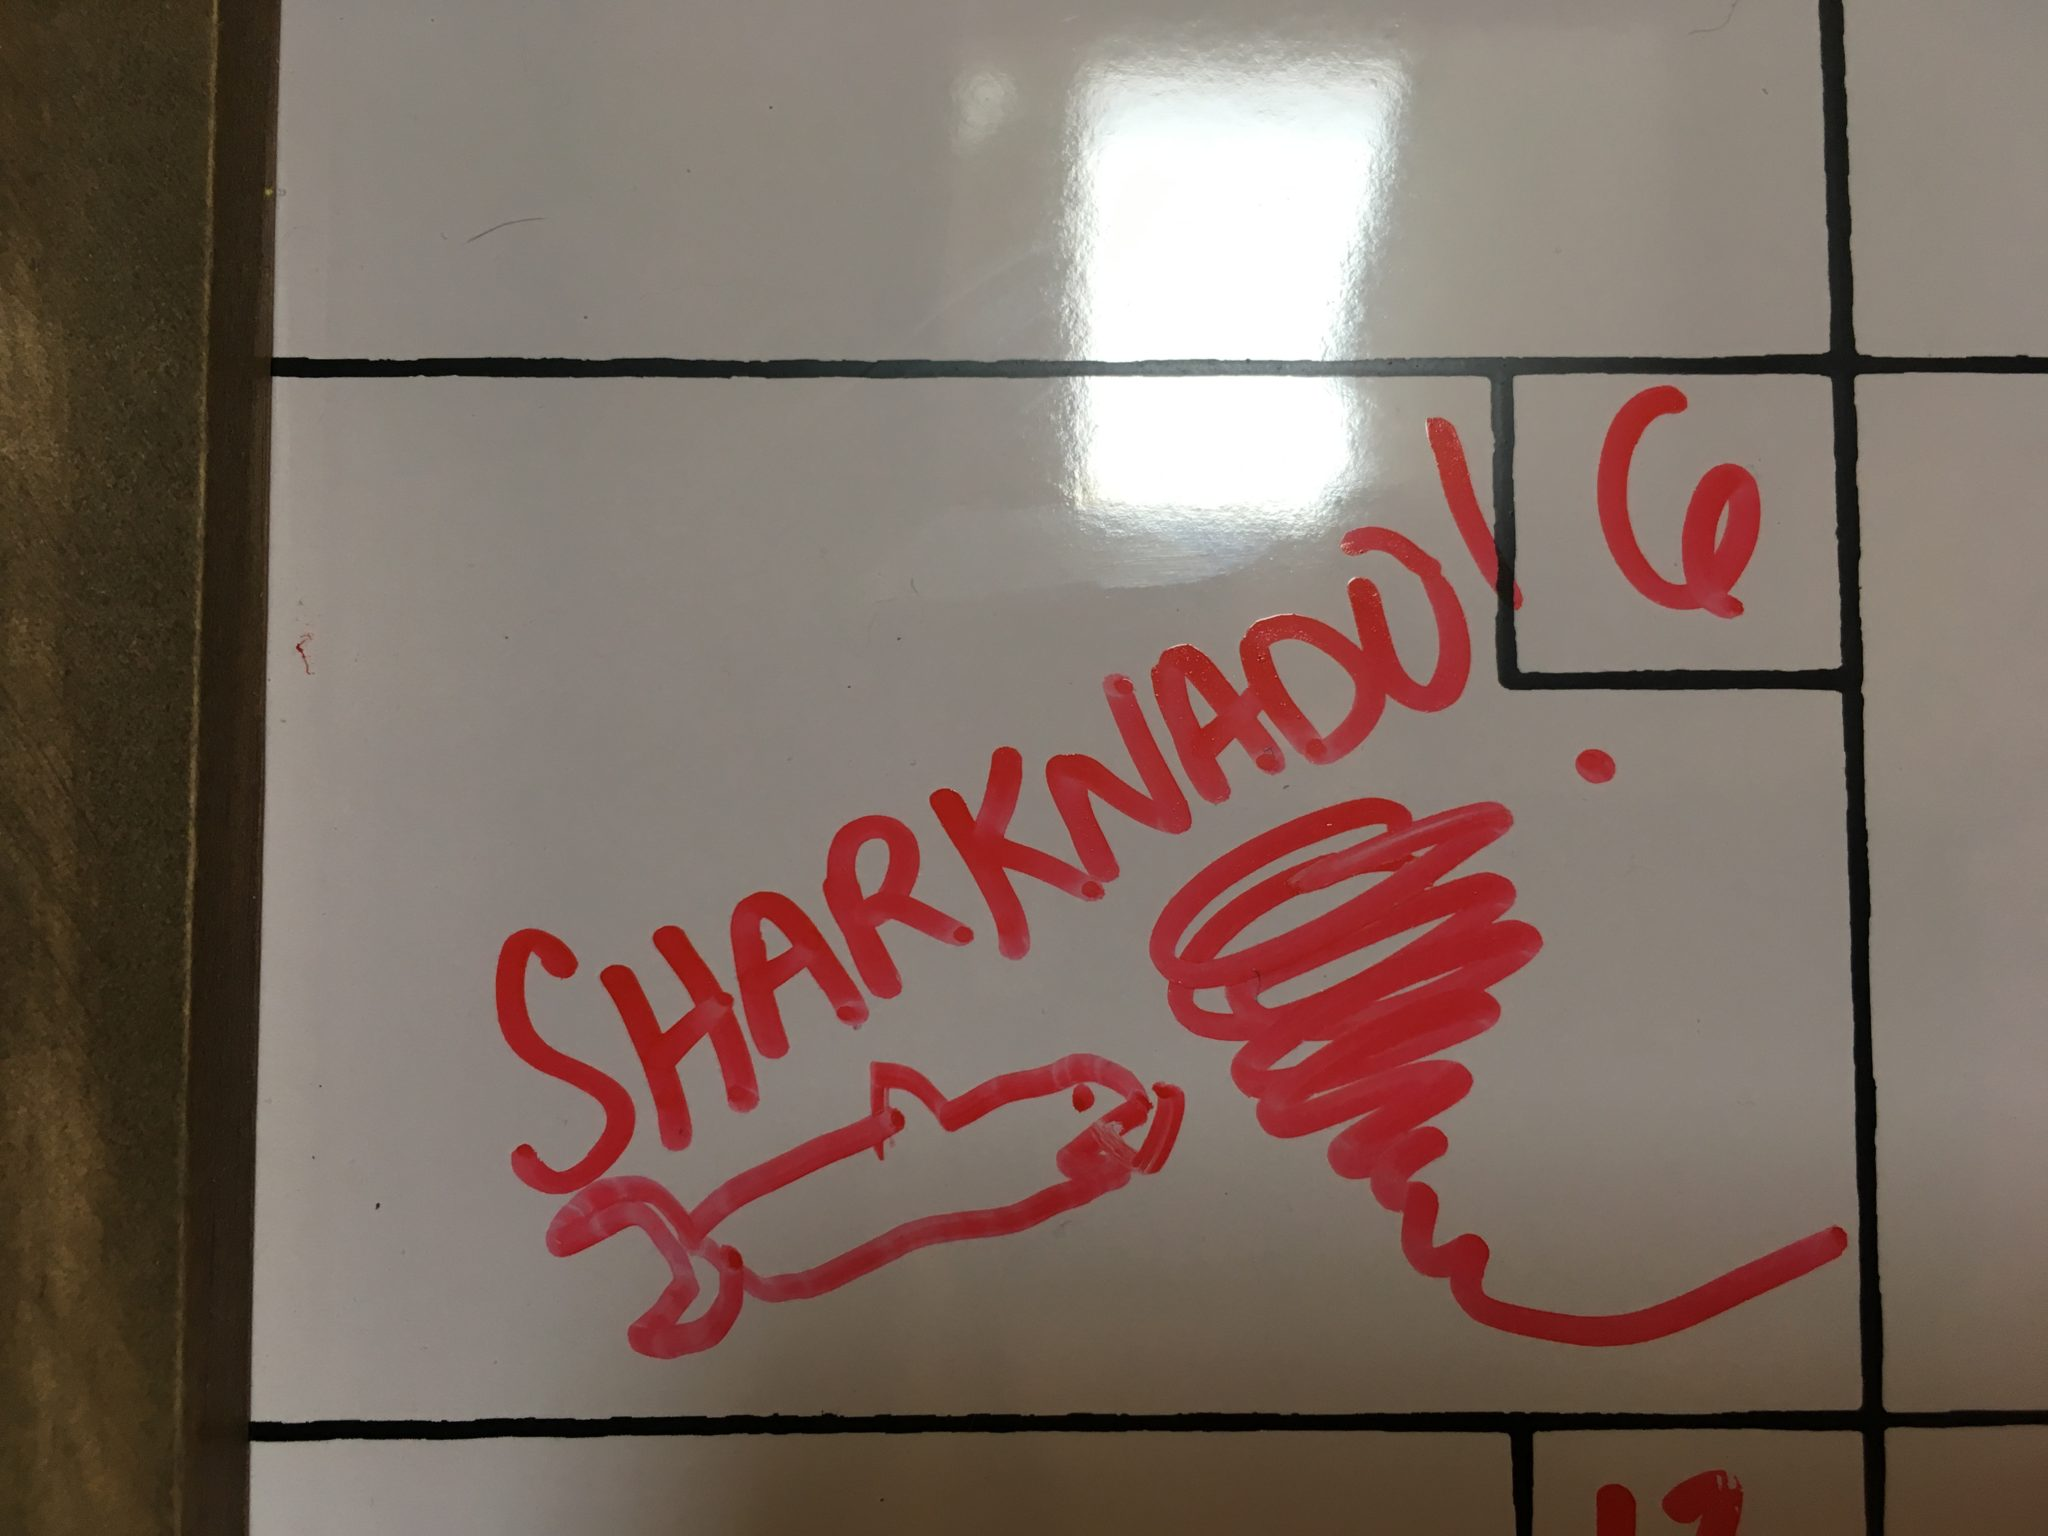 Sharknado 5 My secret obsession